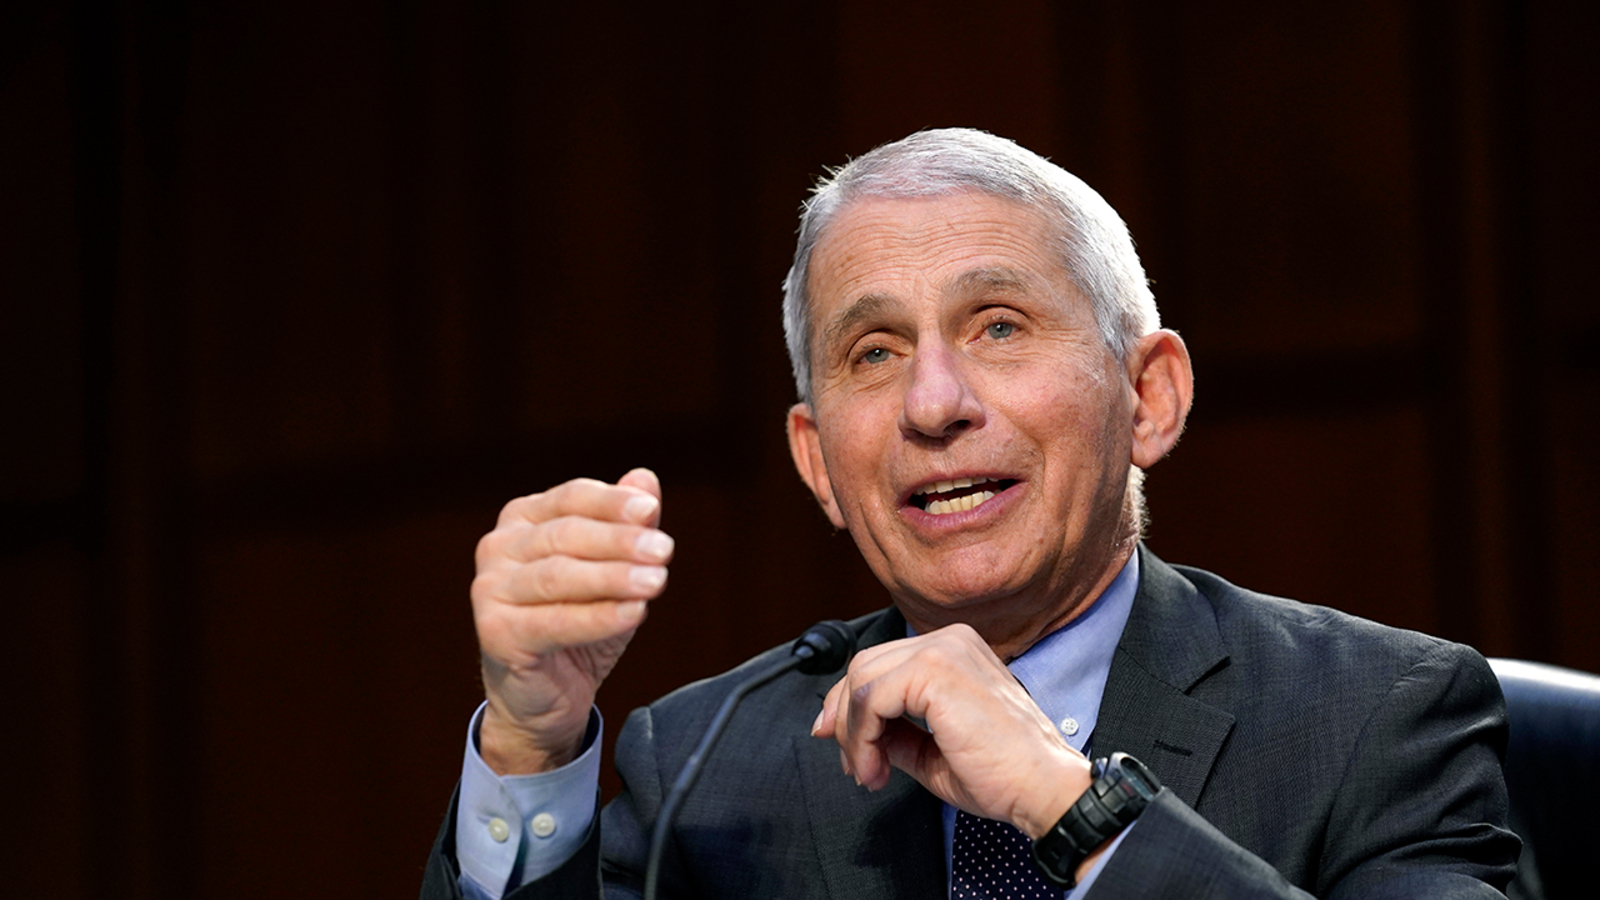 'Ample chance' for more dangerous COVID variant if more Americans aren't vaccinated, Fauci says